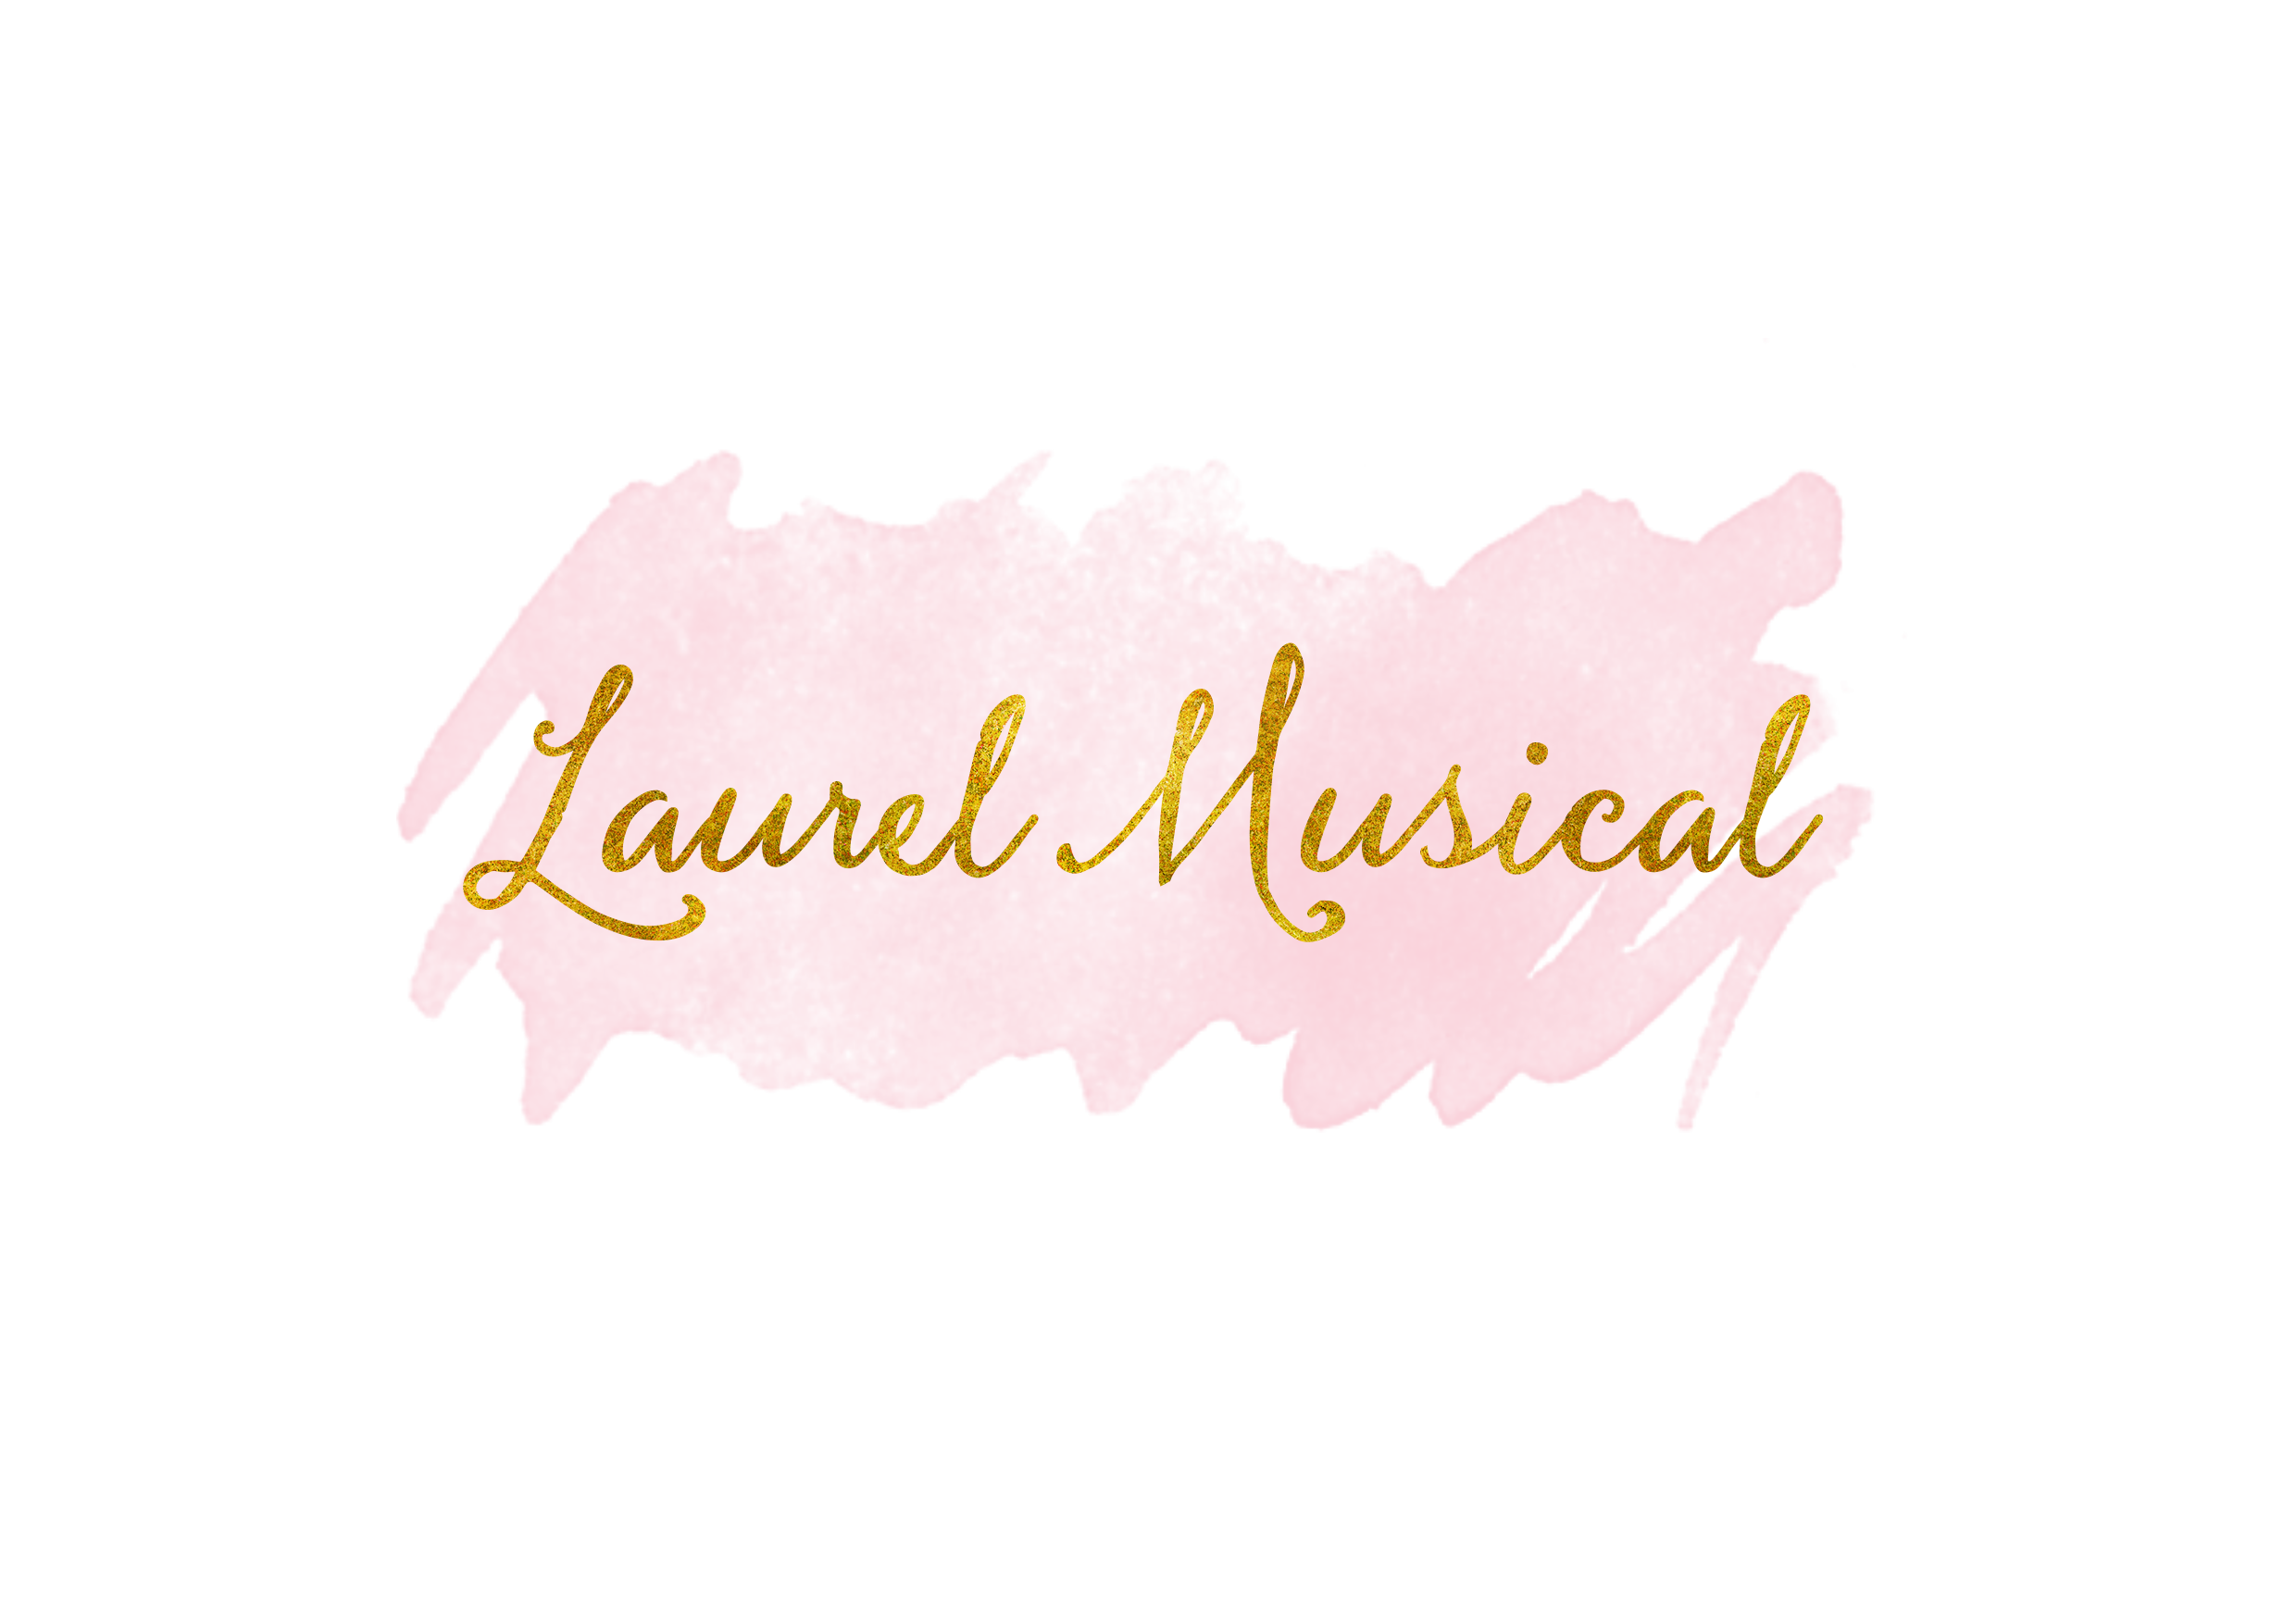 Laurel Musical